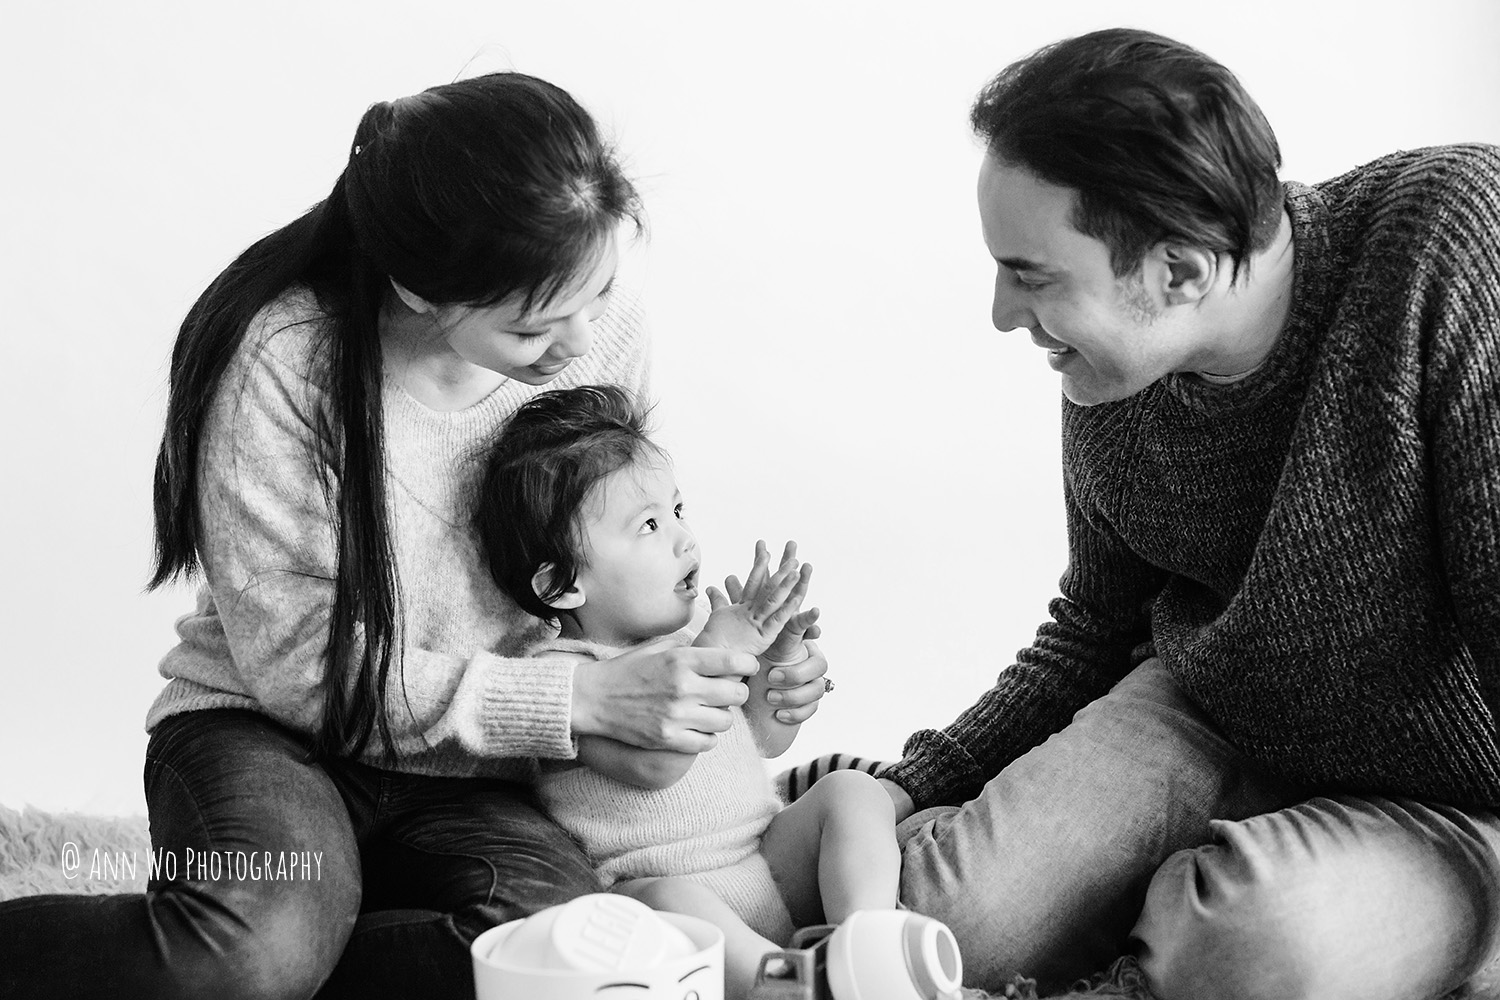 lifestyle-photography-london-family-baby-photoshoot-ann-wo-04.jpg